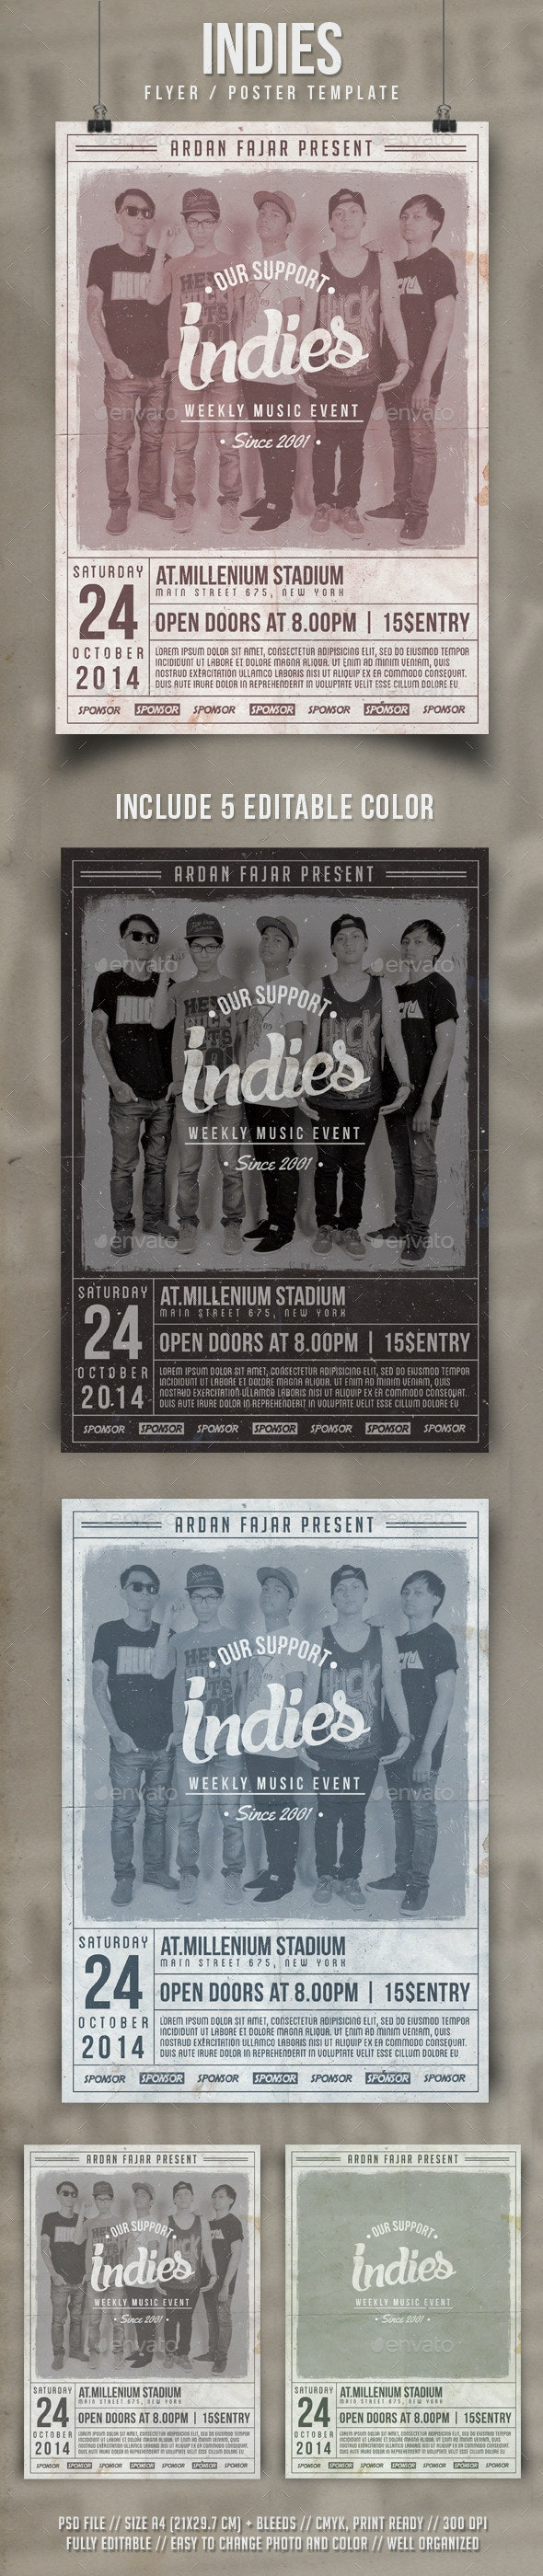 Indies Flyer Template - Events Flyers